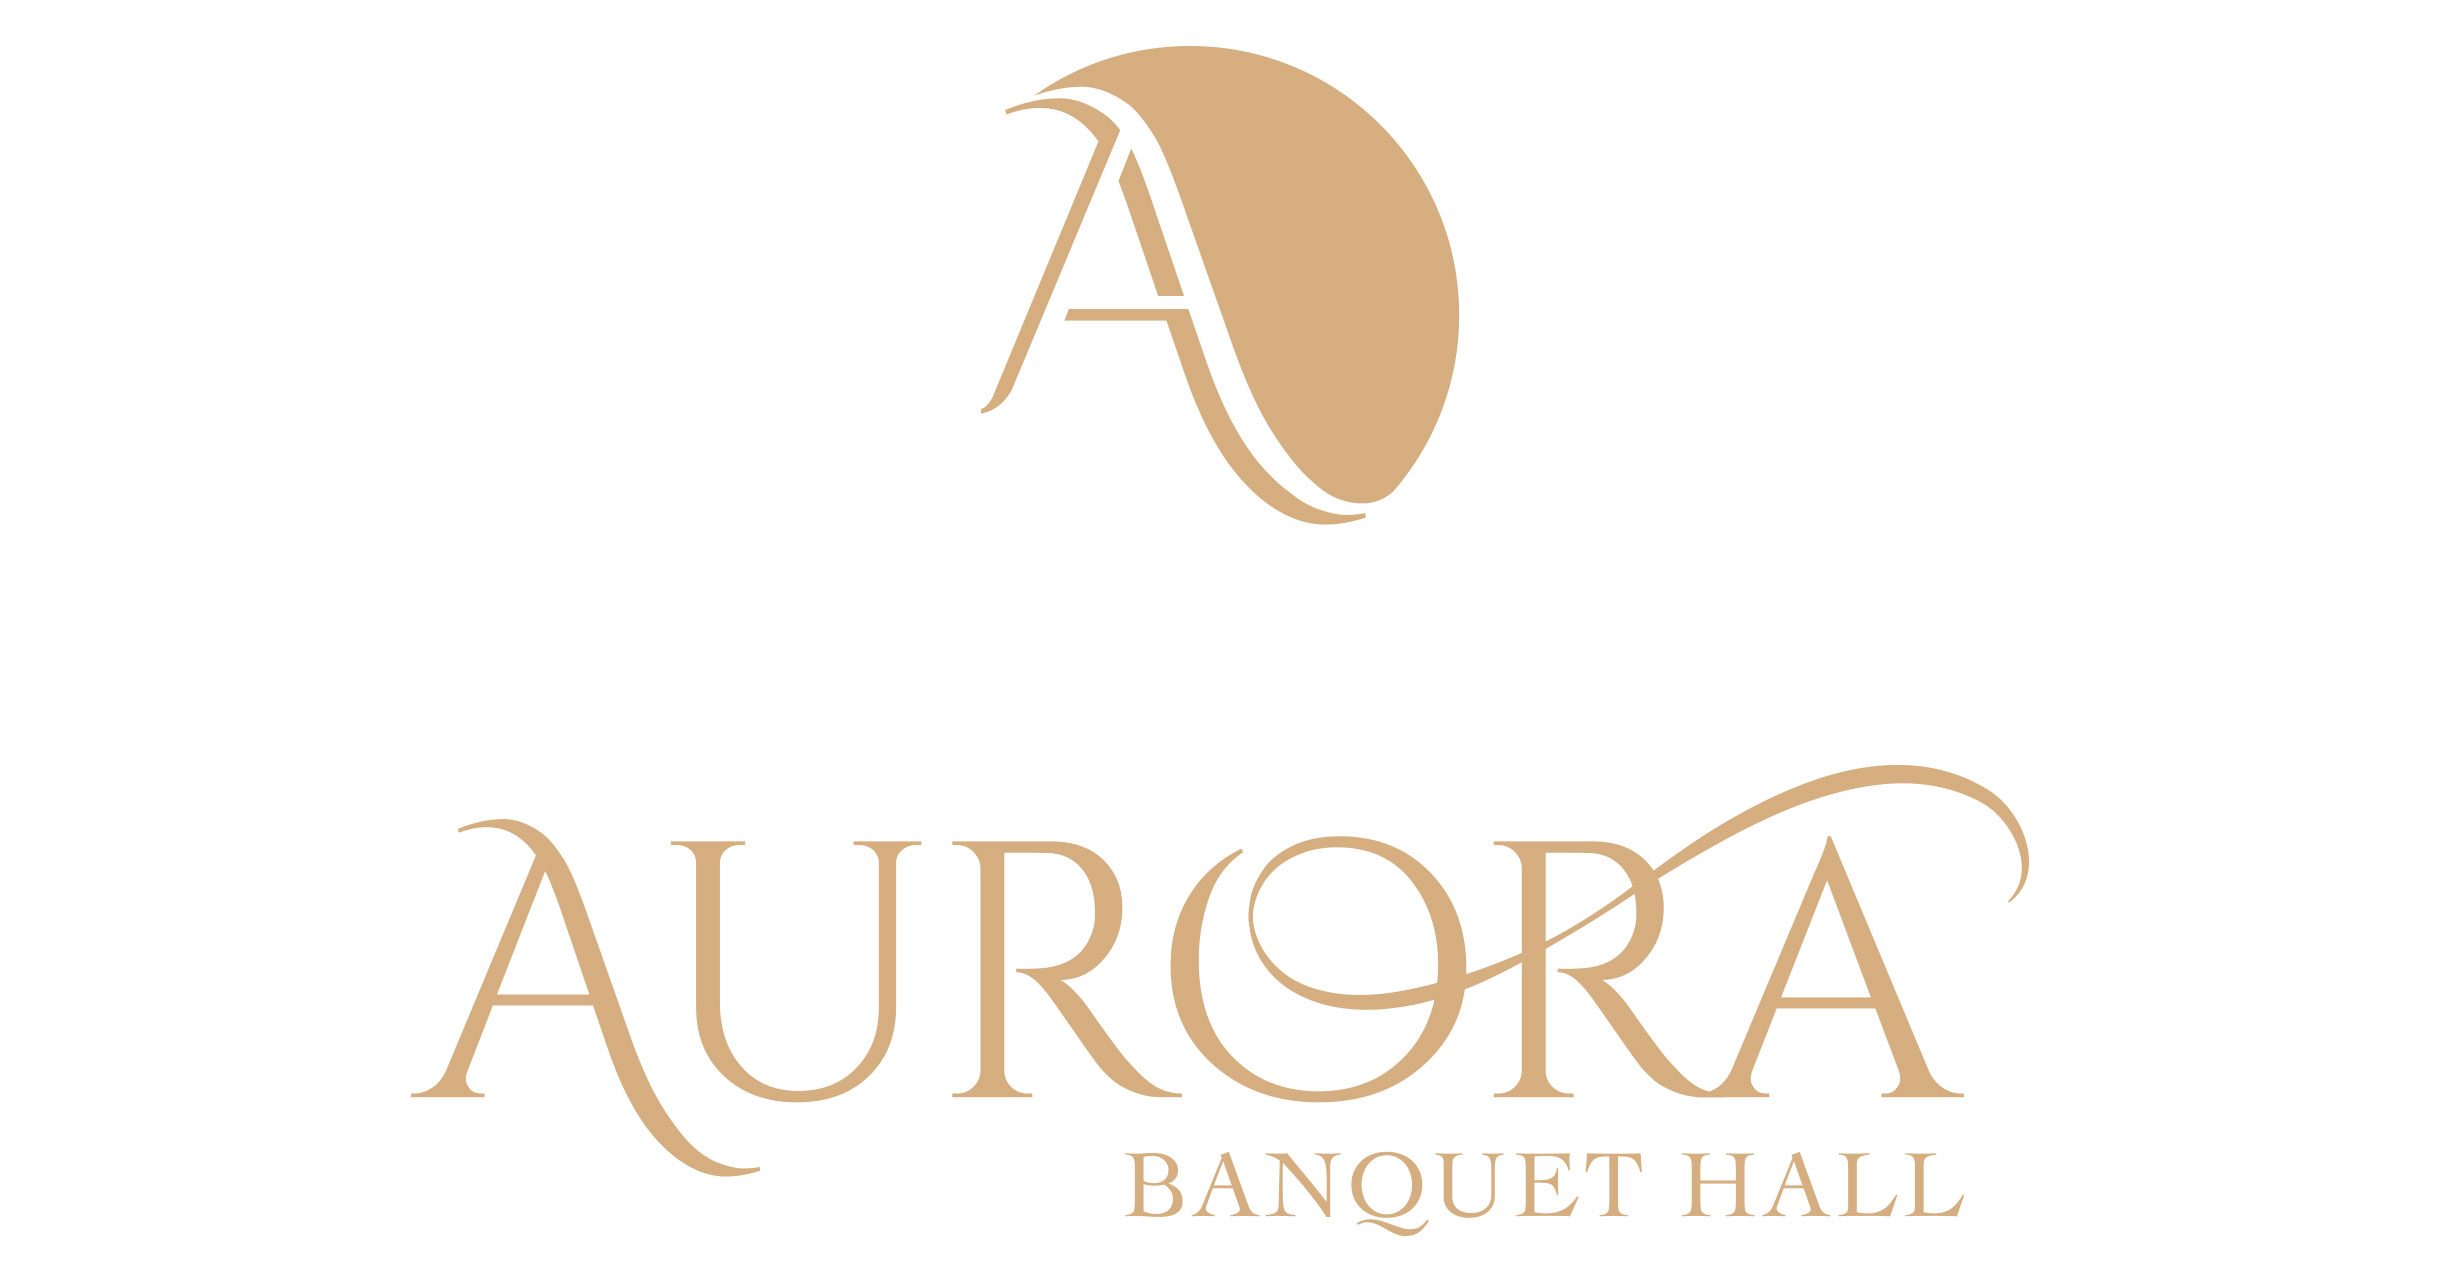 Banquet hall logo design in los angeles Logo designers los angeles